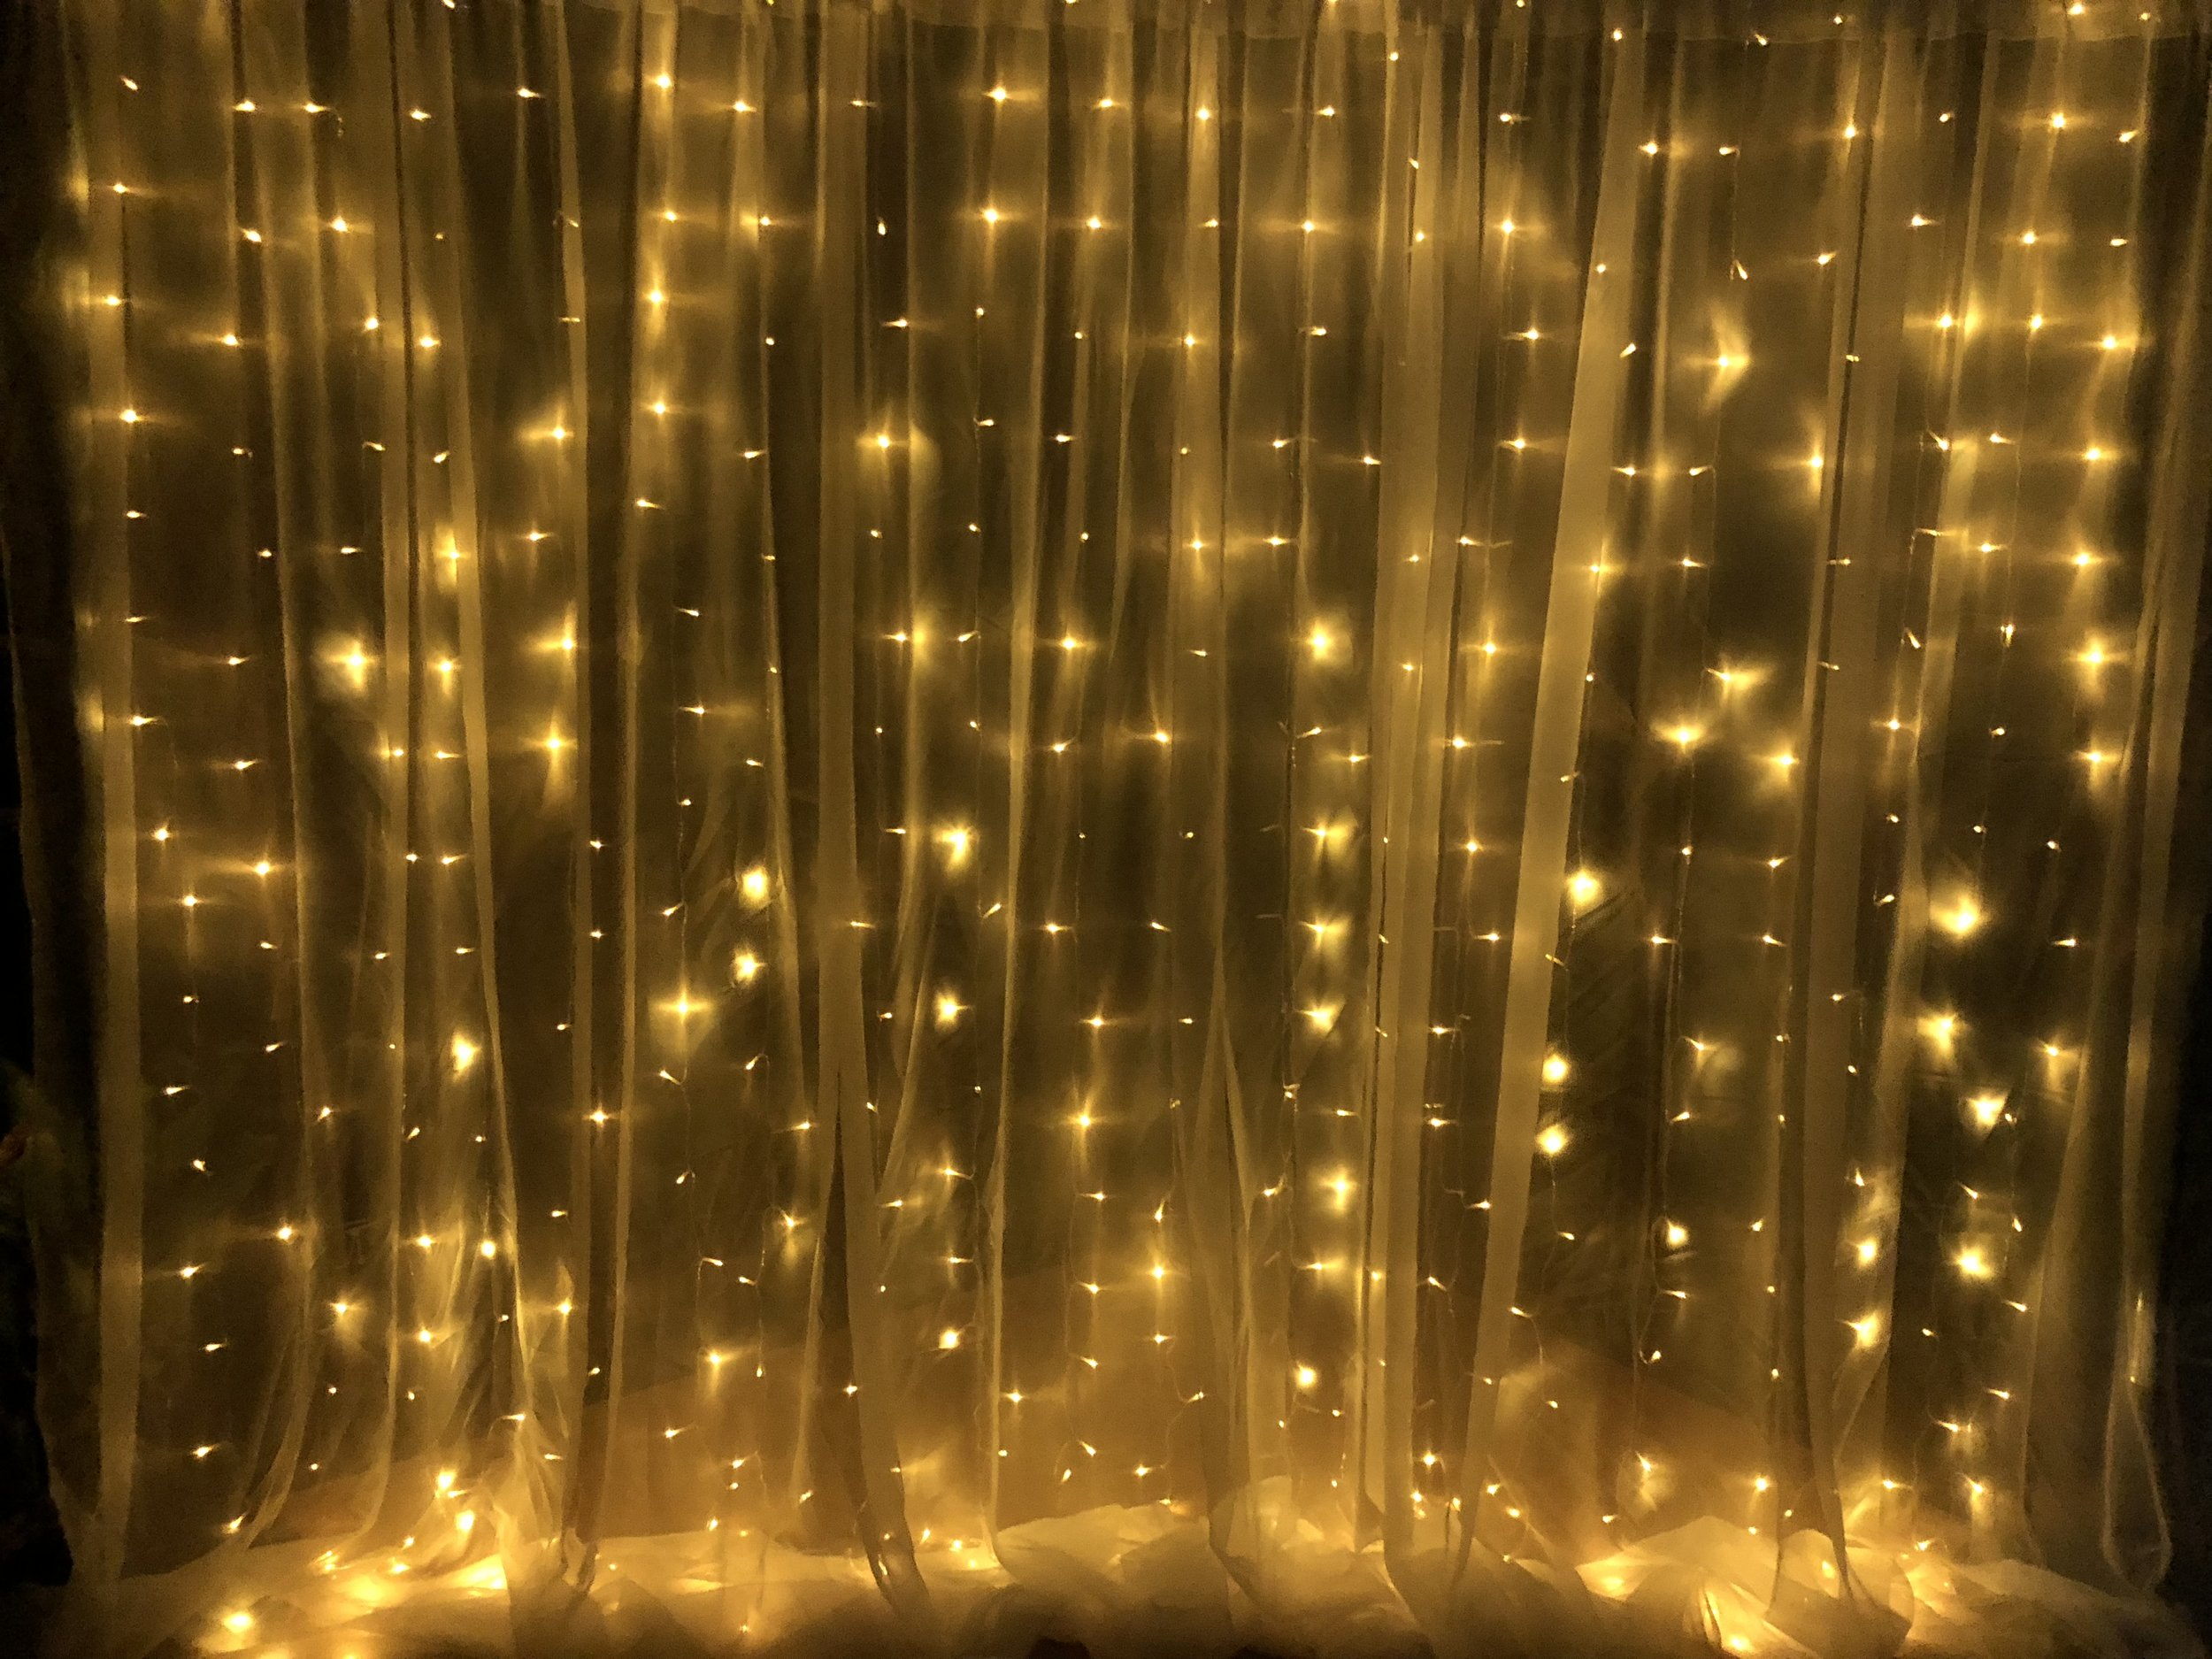 Fairy light curtain: $120 - Perfect for behind bridal table, desserts bar or as a magical backdrop. 462 LED Warm White curtain backdrop 3M x 3M . Price includes stand and set up. Can be hired without curtain